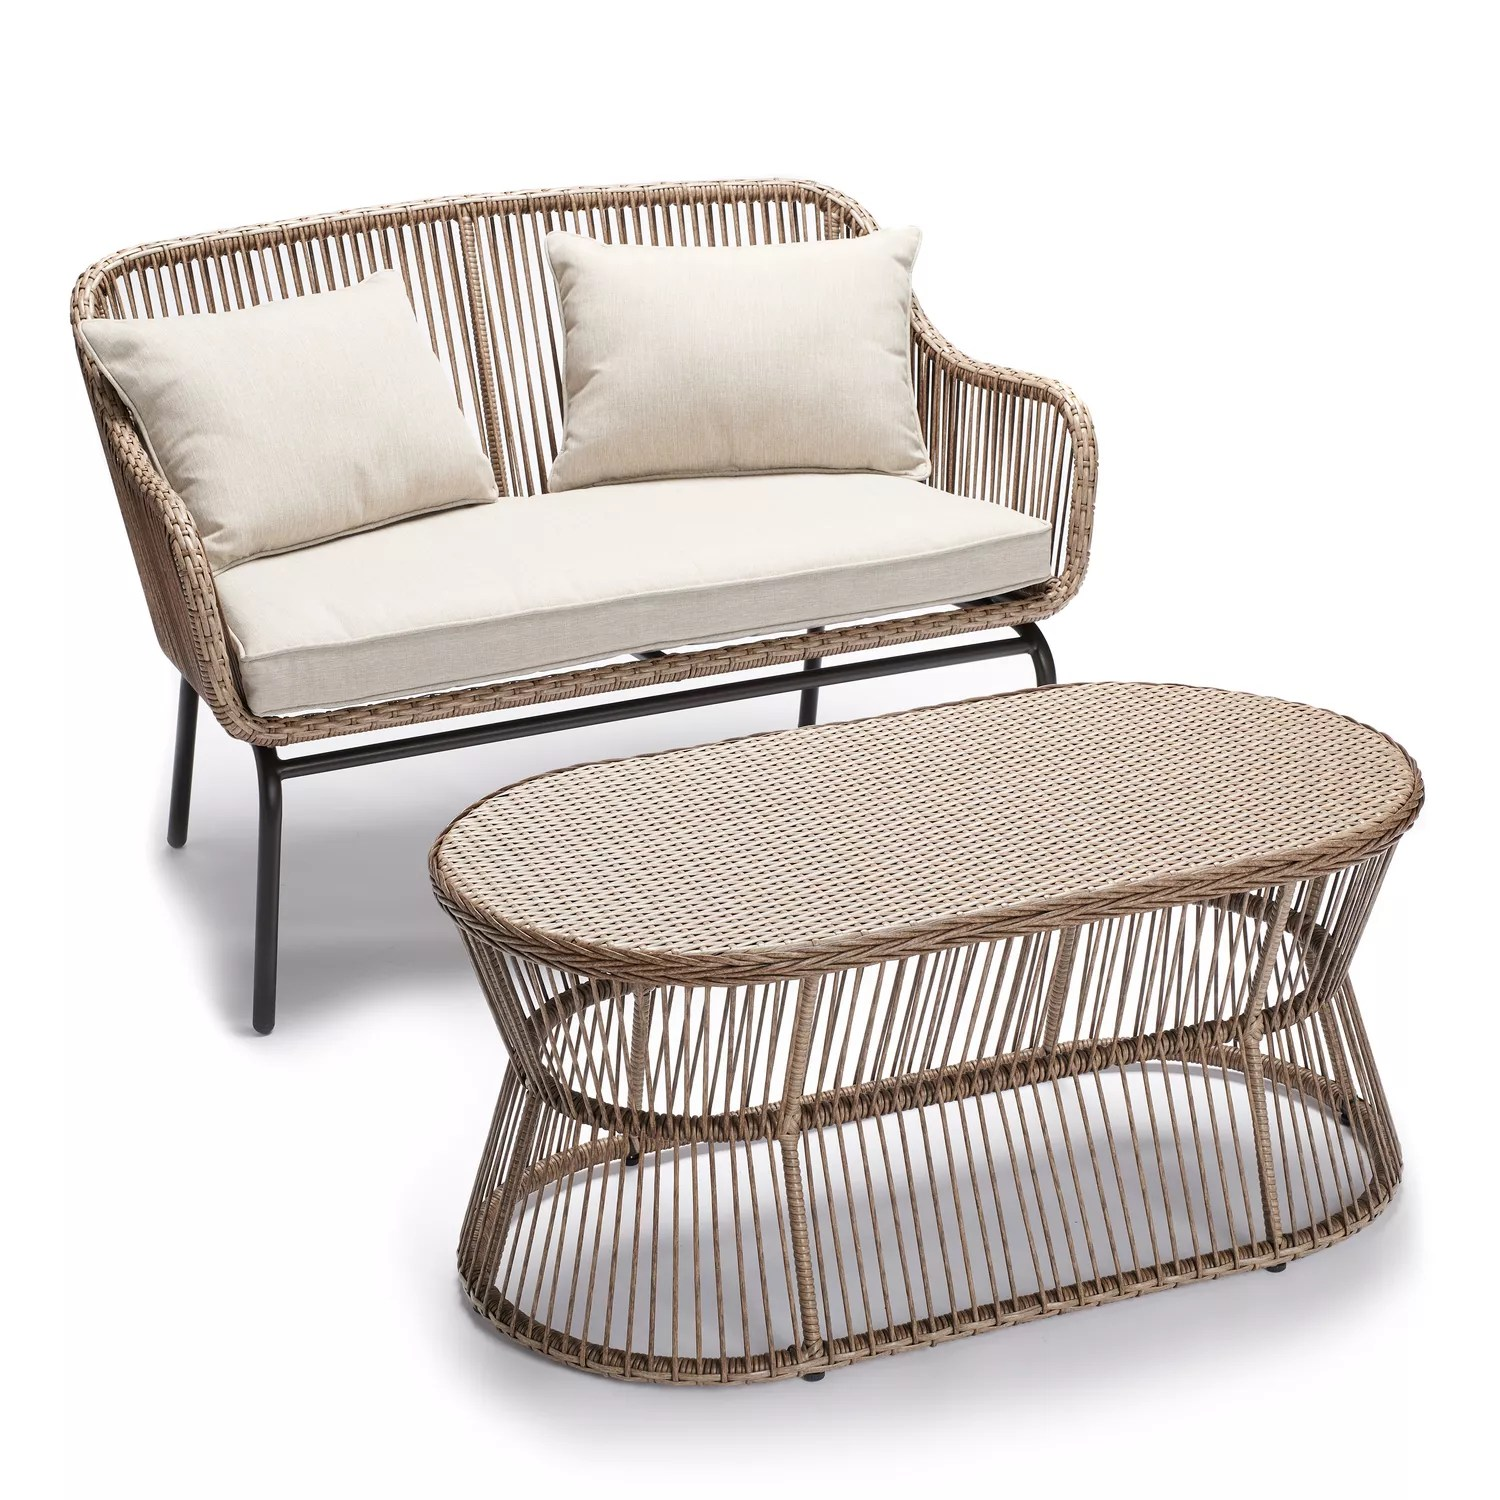 sonoma goods for life patio solta loveseat coffee table 2 piece set